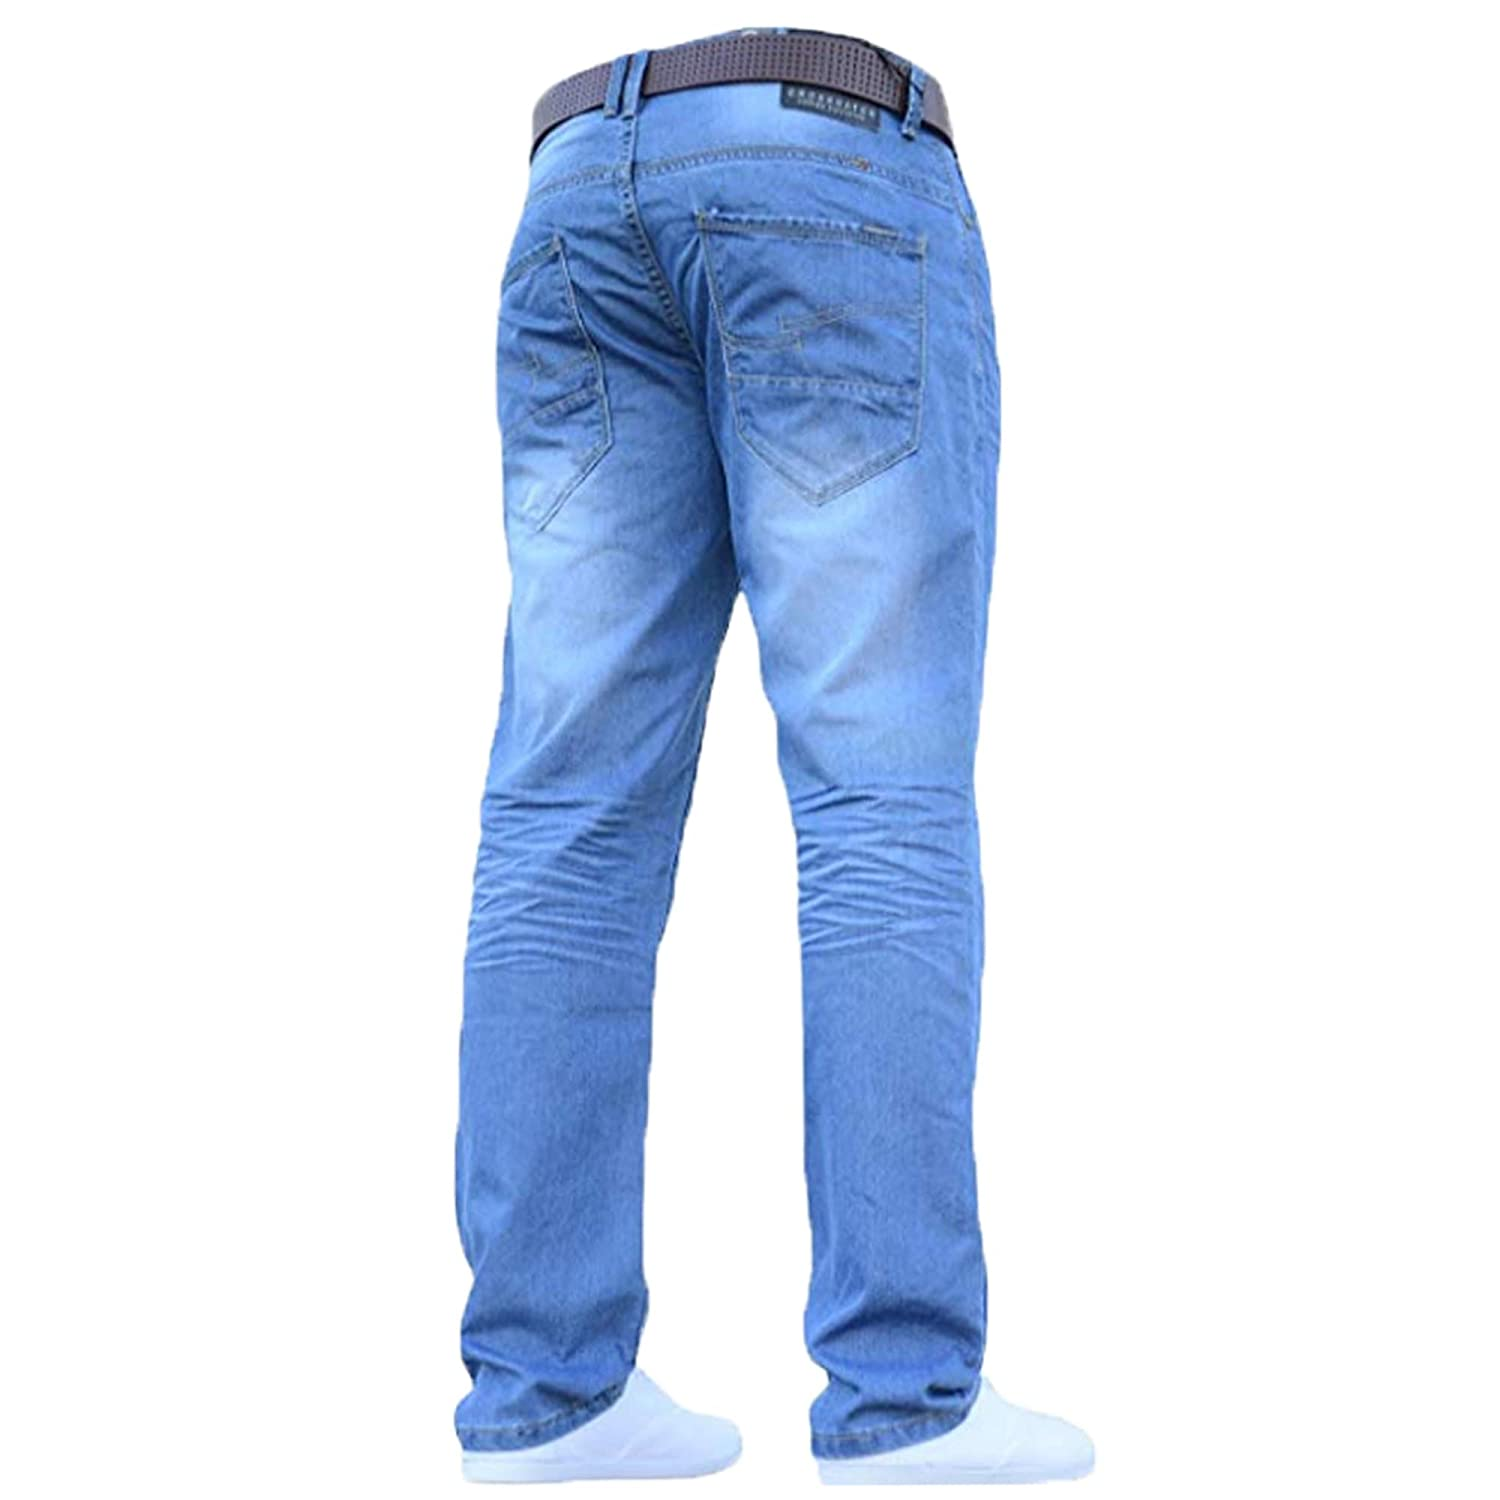 Crosshatch Uomo Classico Gamba Dritta Regular Fit Elegante Denim Jeans all girovita con Cintura